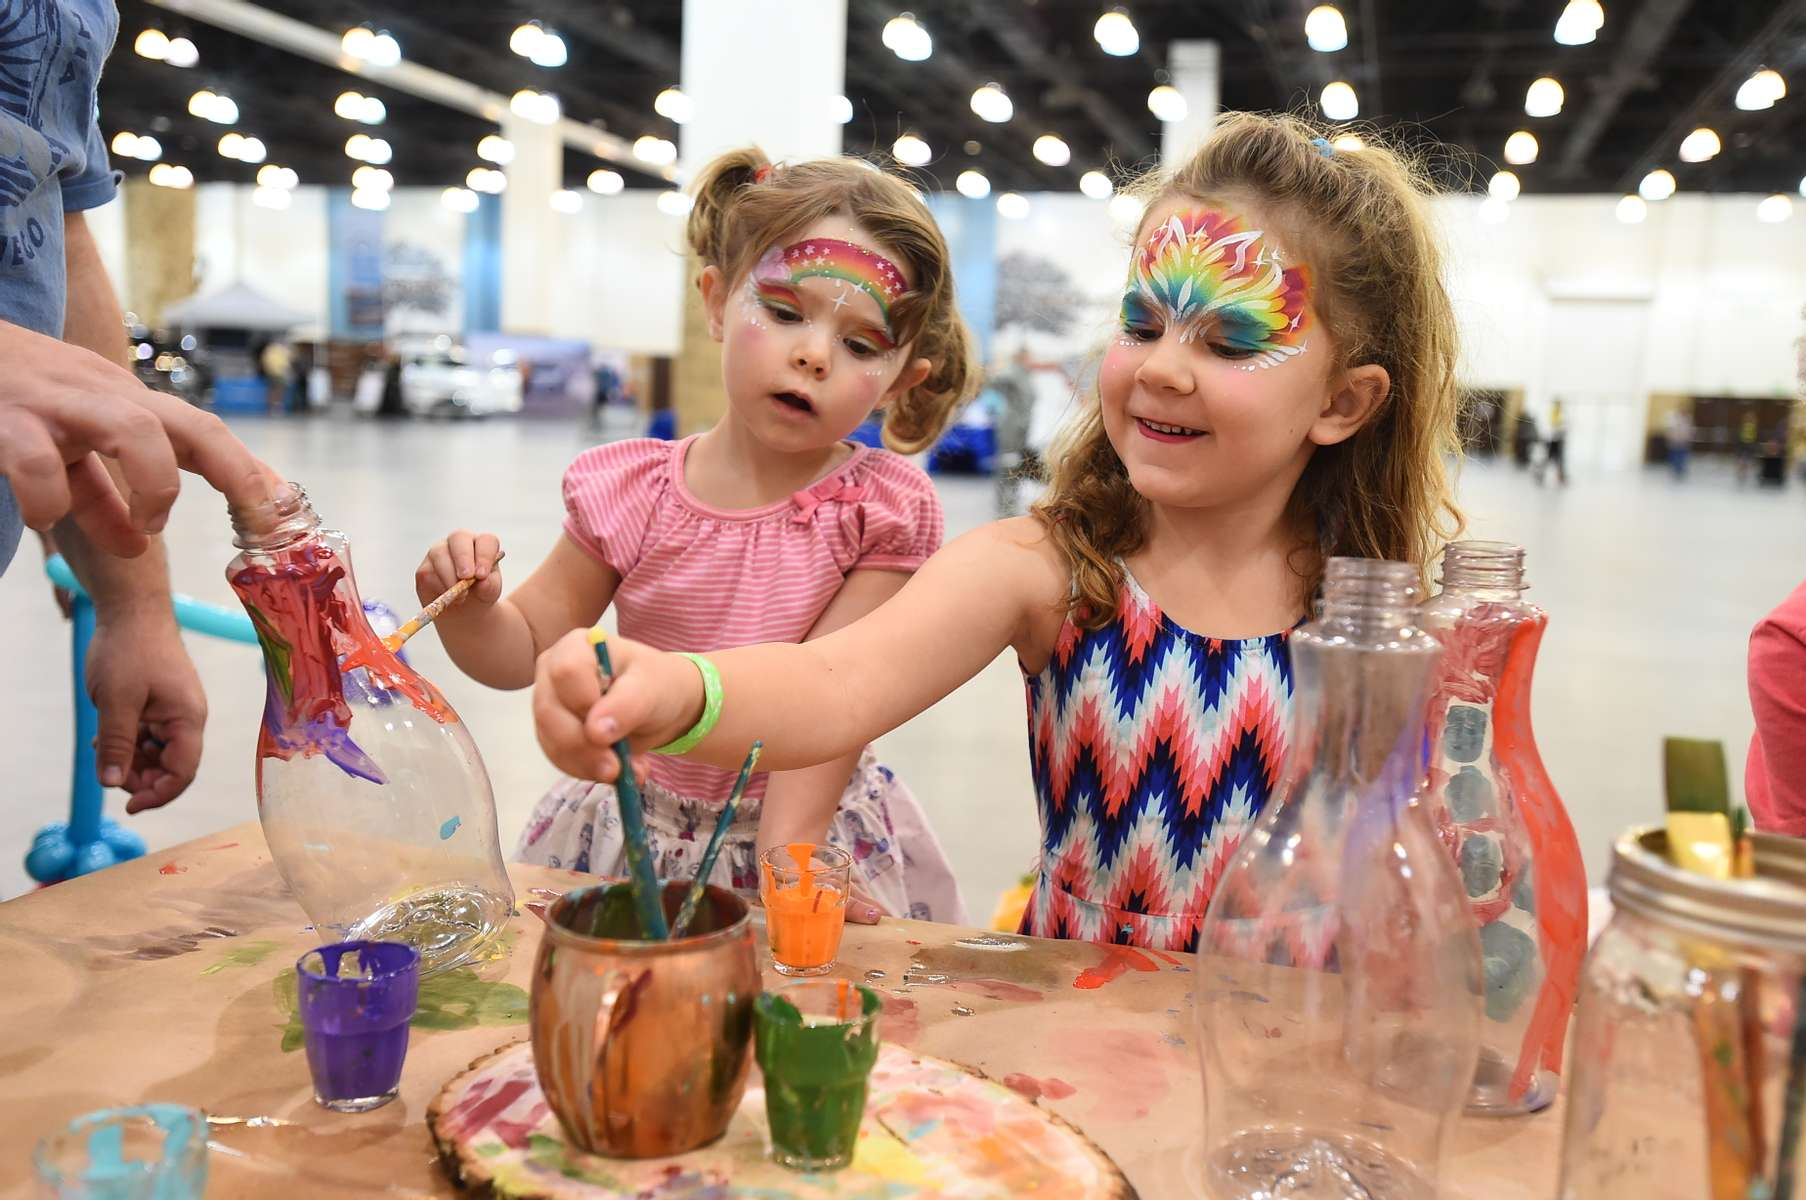 Kids are busy creating vase masterpieces at the Califia craft area at Live On Green on Friday, Dec. 29, 2017, in Pasadena, Calif. (Jordan Strauss/AP Images for HQ)